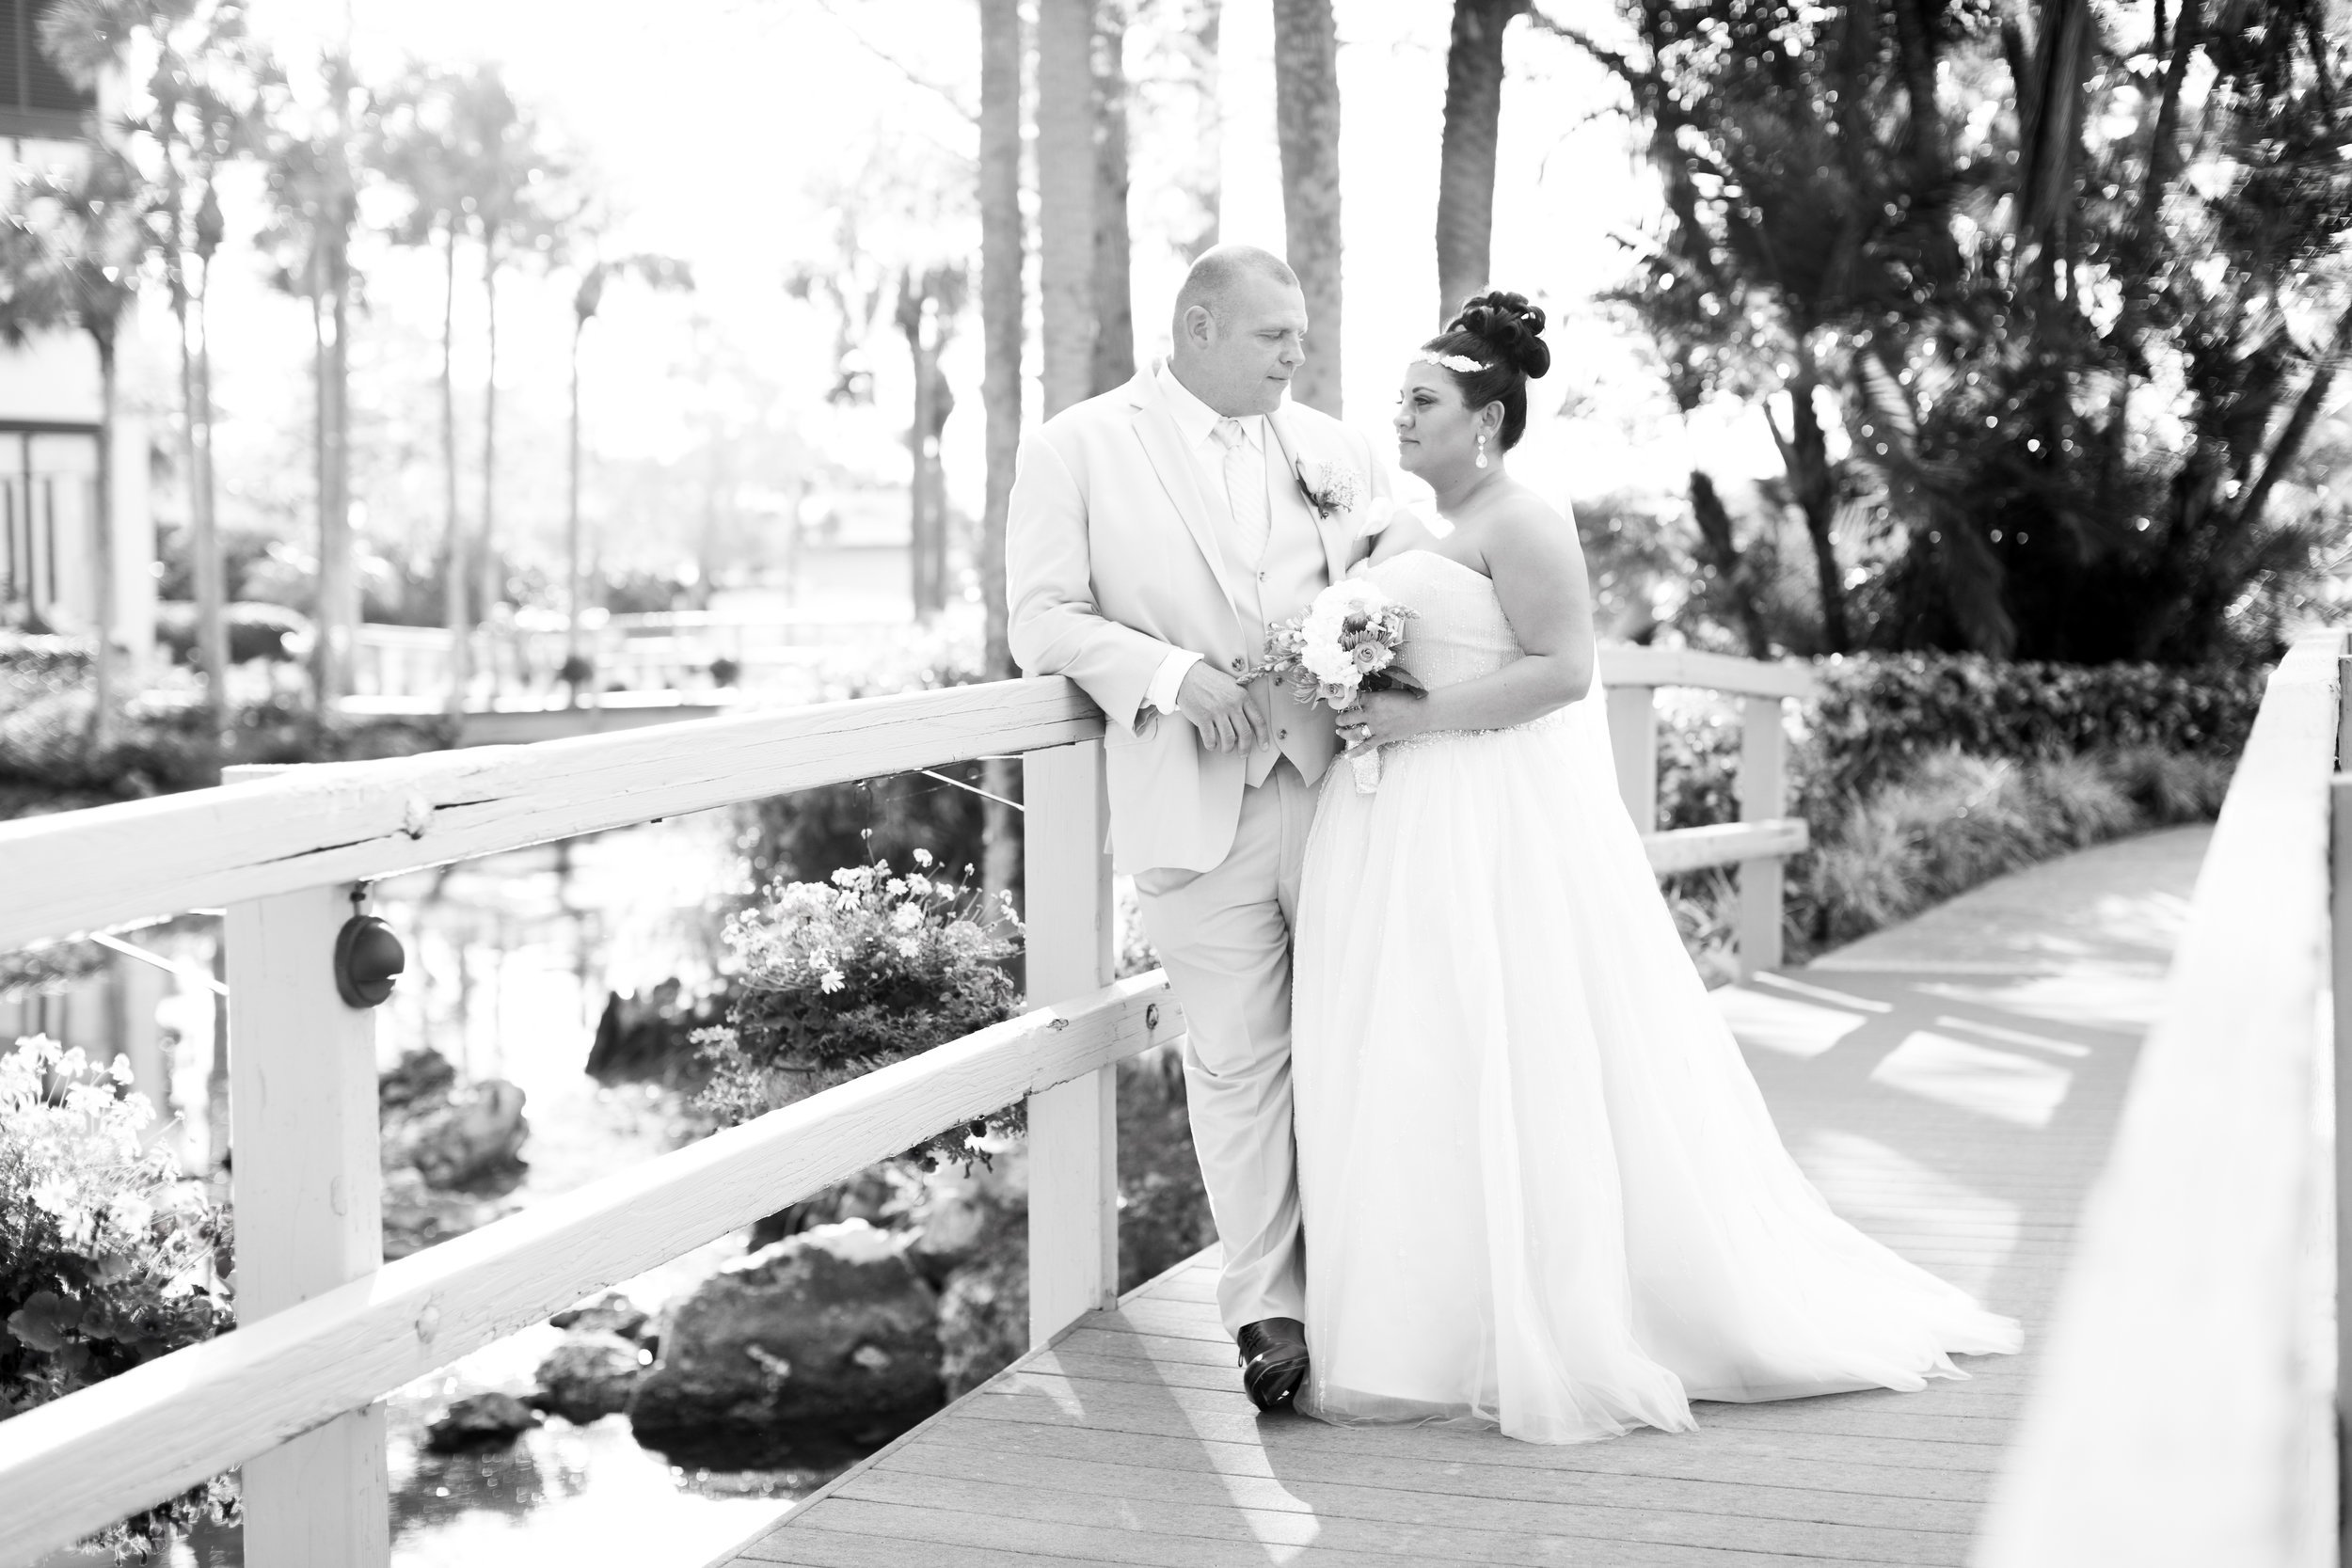 Nikki & Bill Sansone  The Regency Grand Cypress Hotel - Orlando, Florida